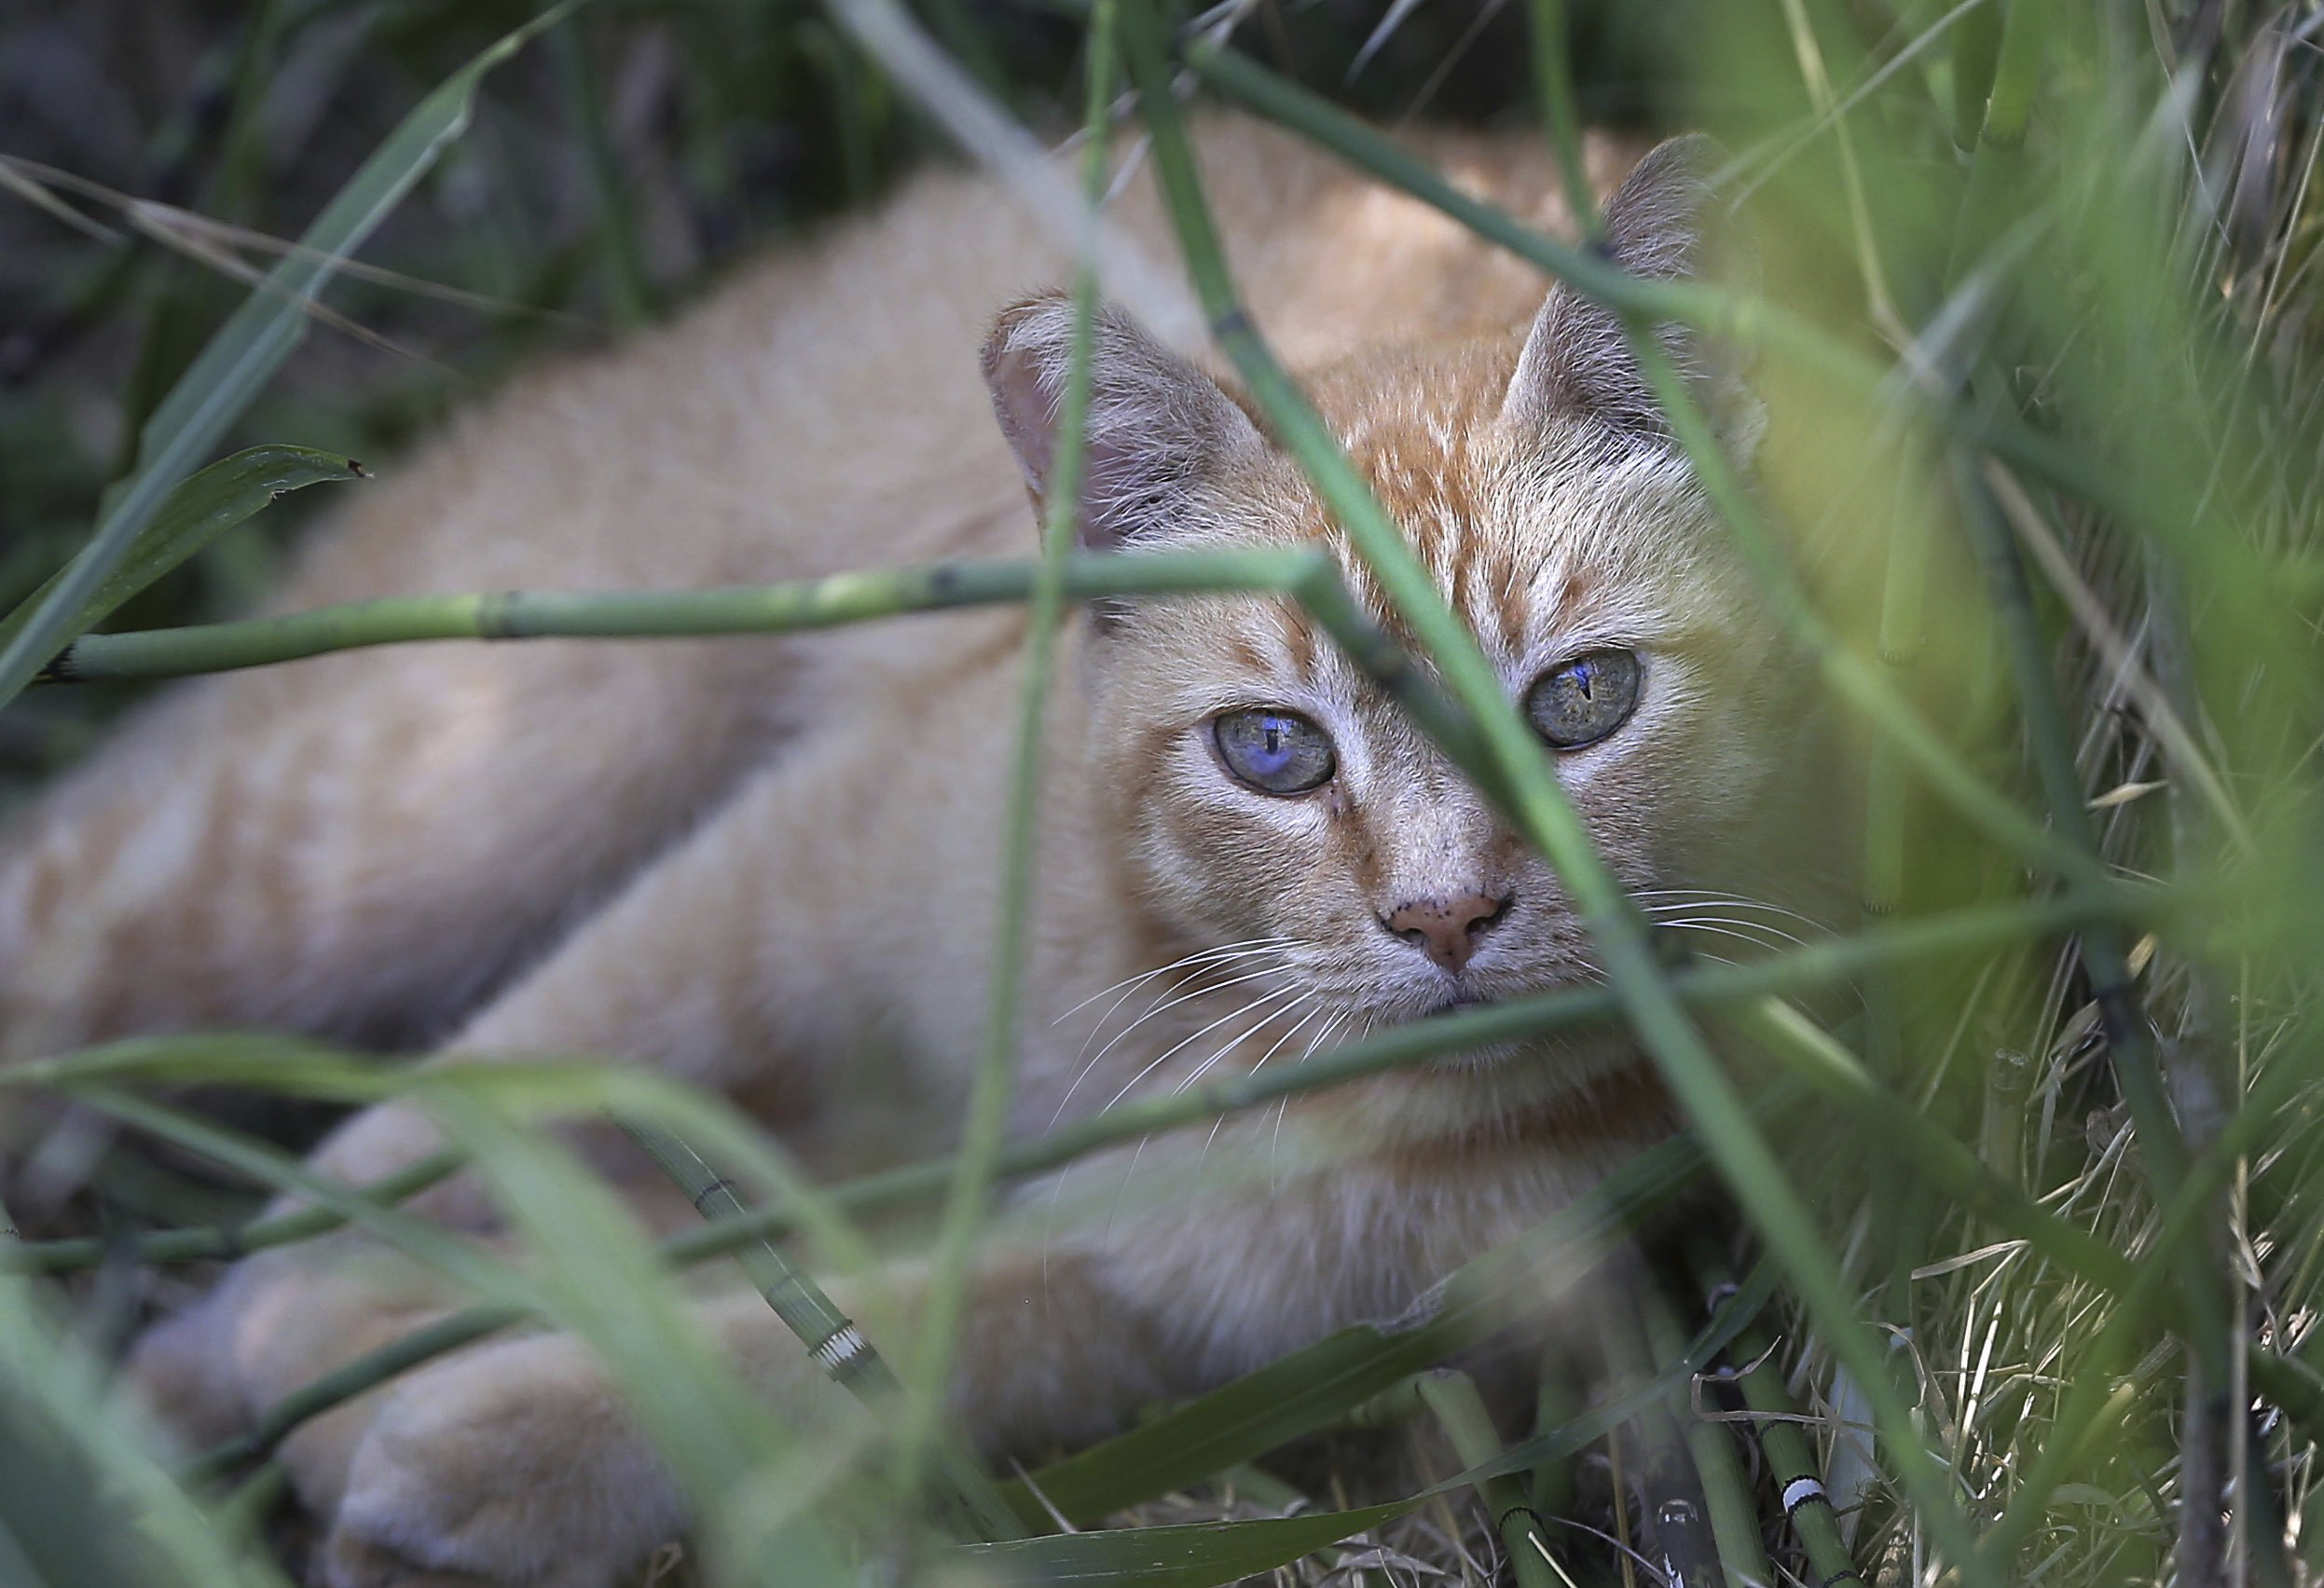 Feral cats make Western Governor's list of invasive species